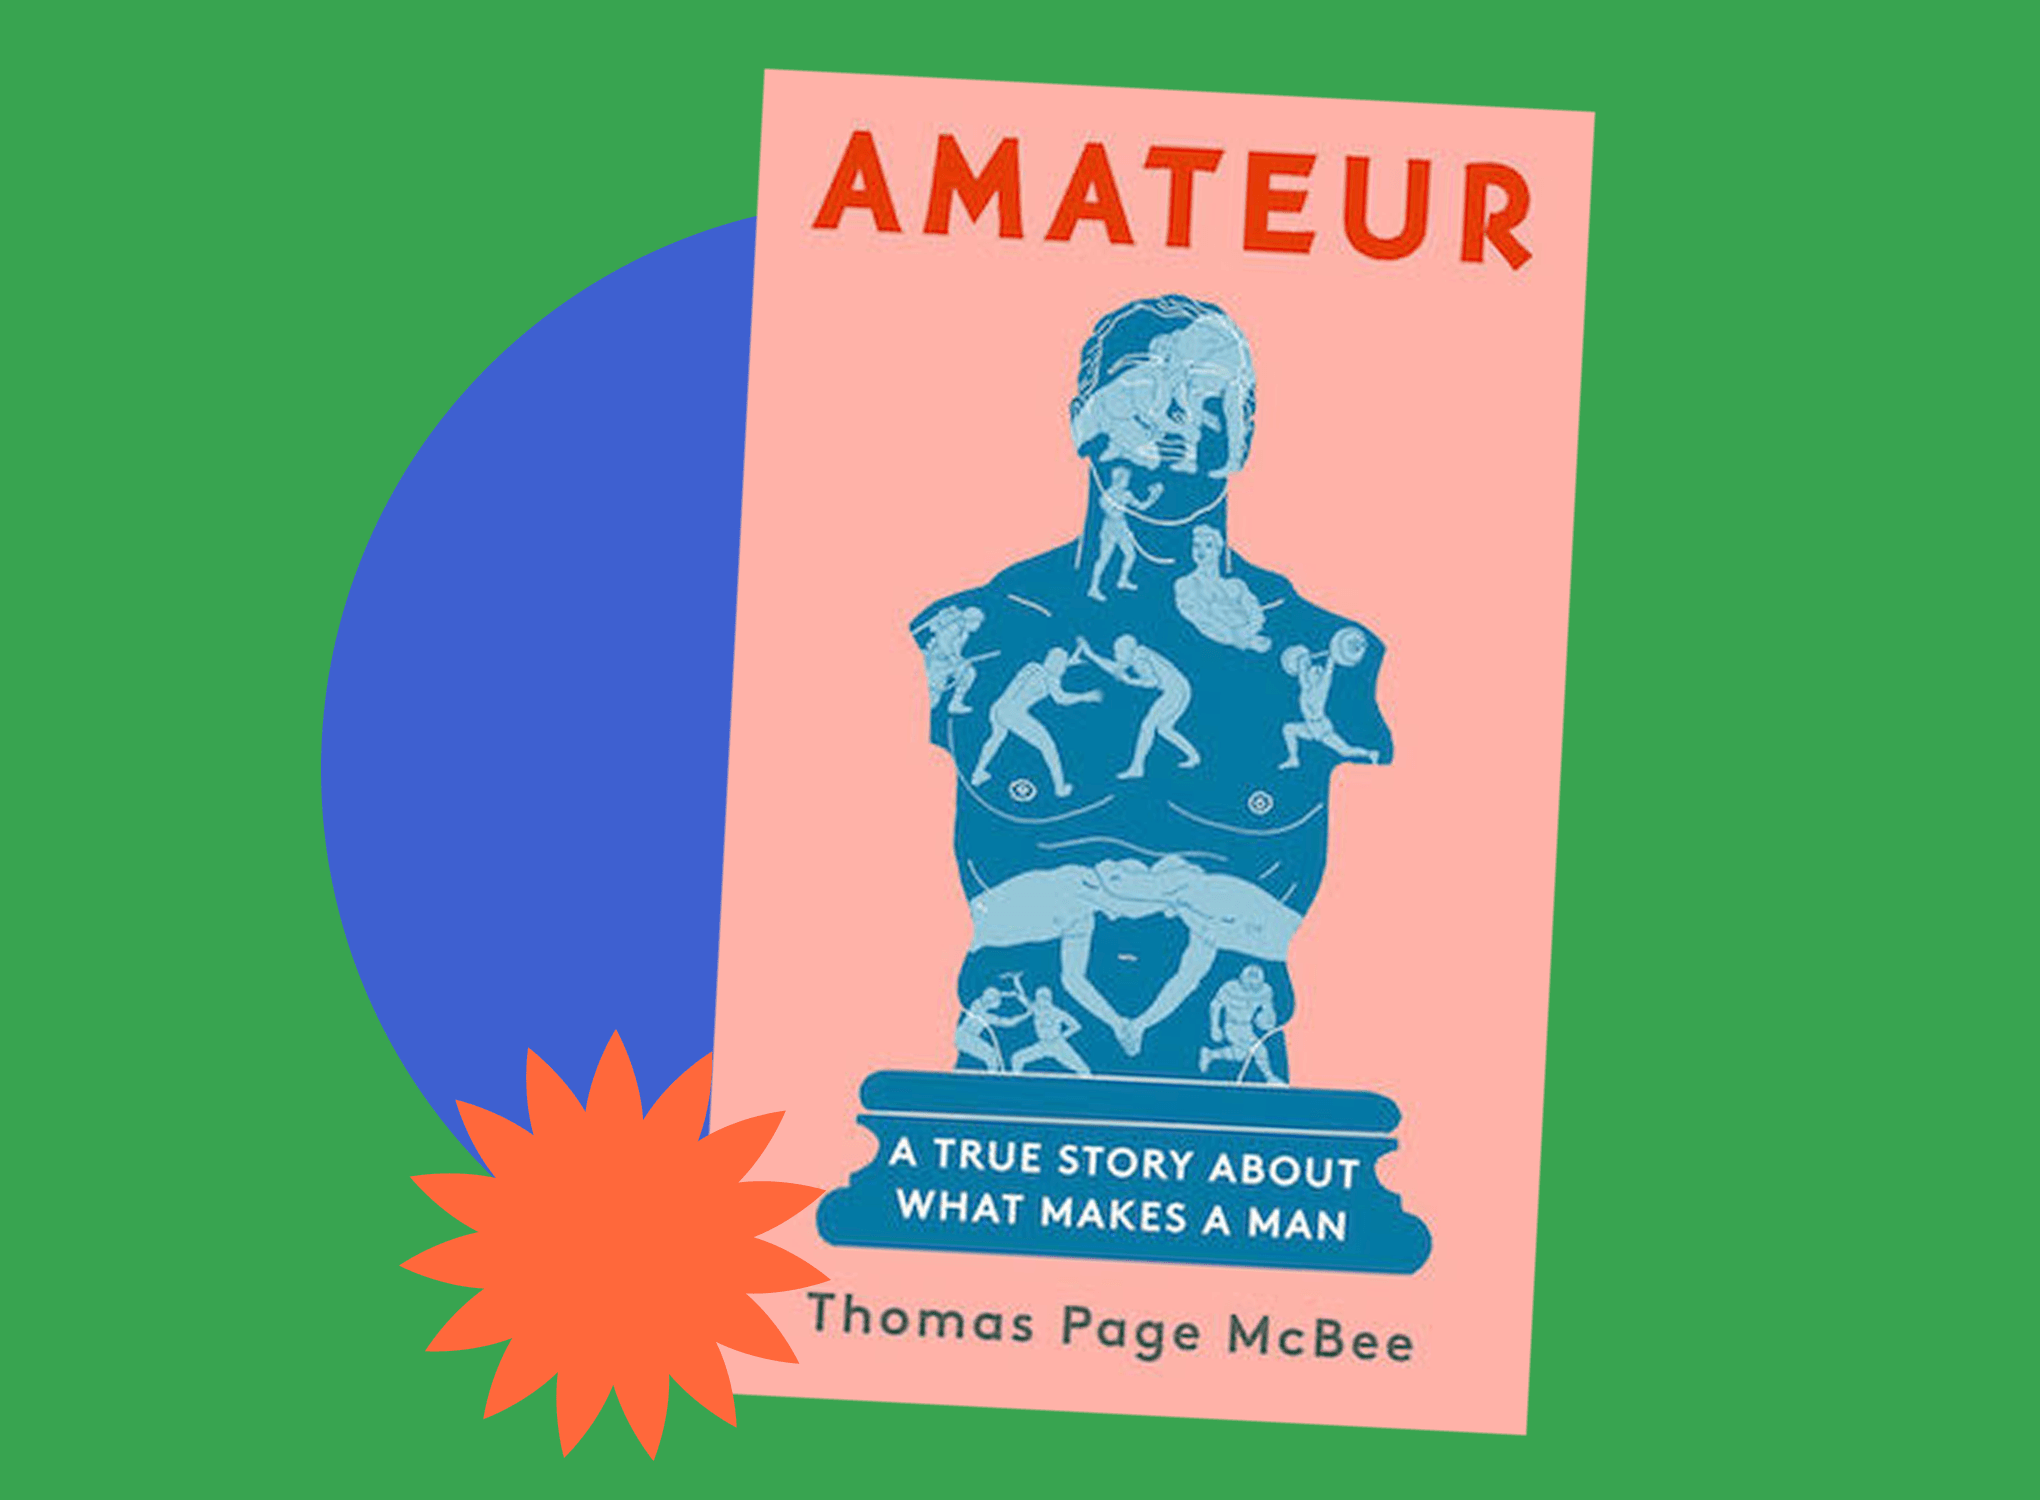 Book jacket for Amateur: A True Story About What Makes a Man by Thomas Page McBee